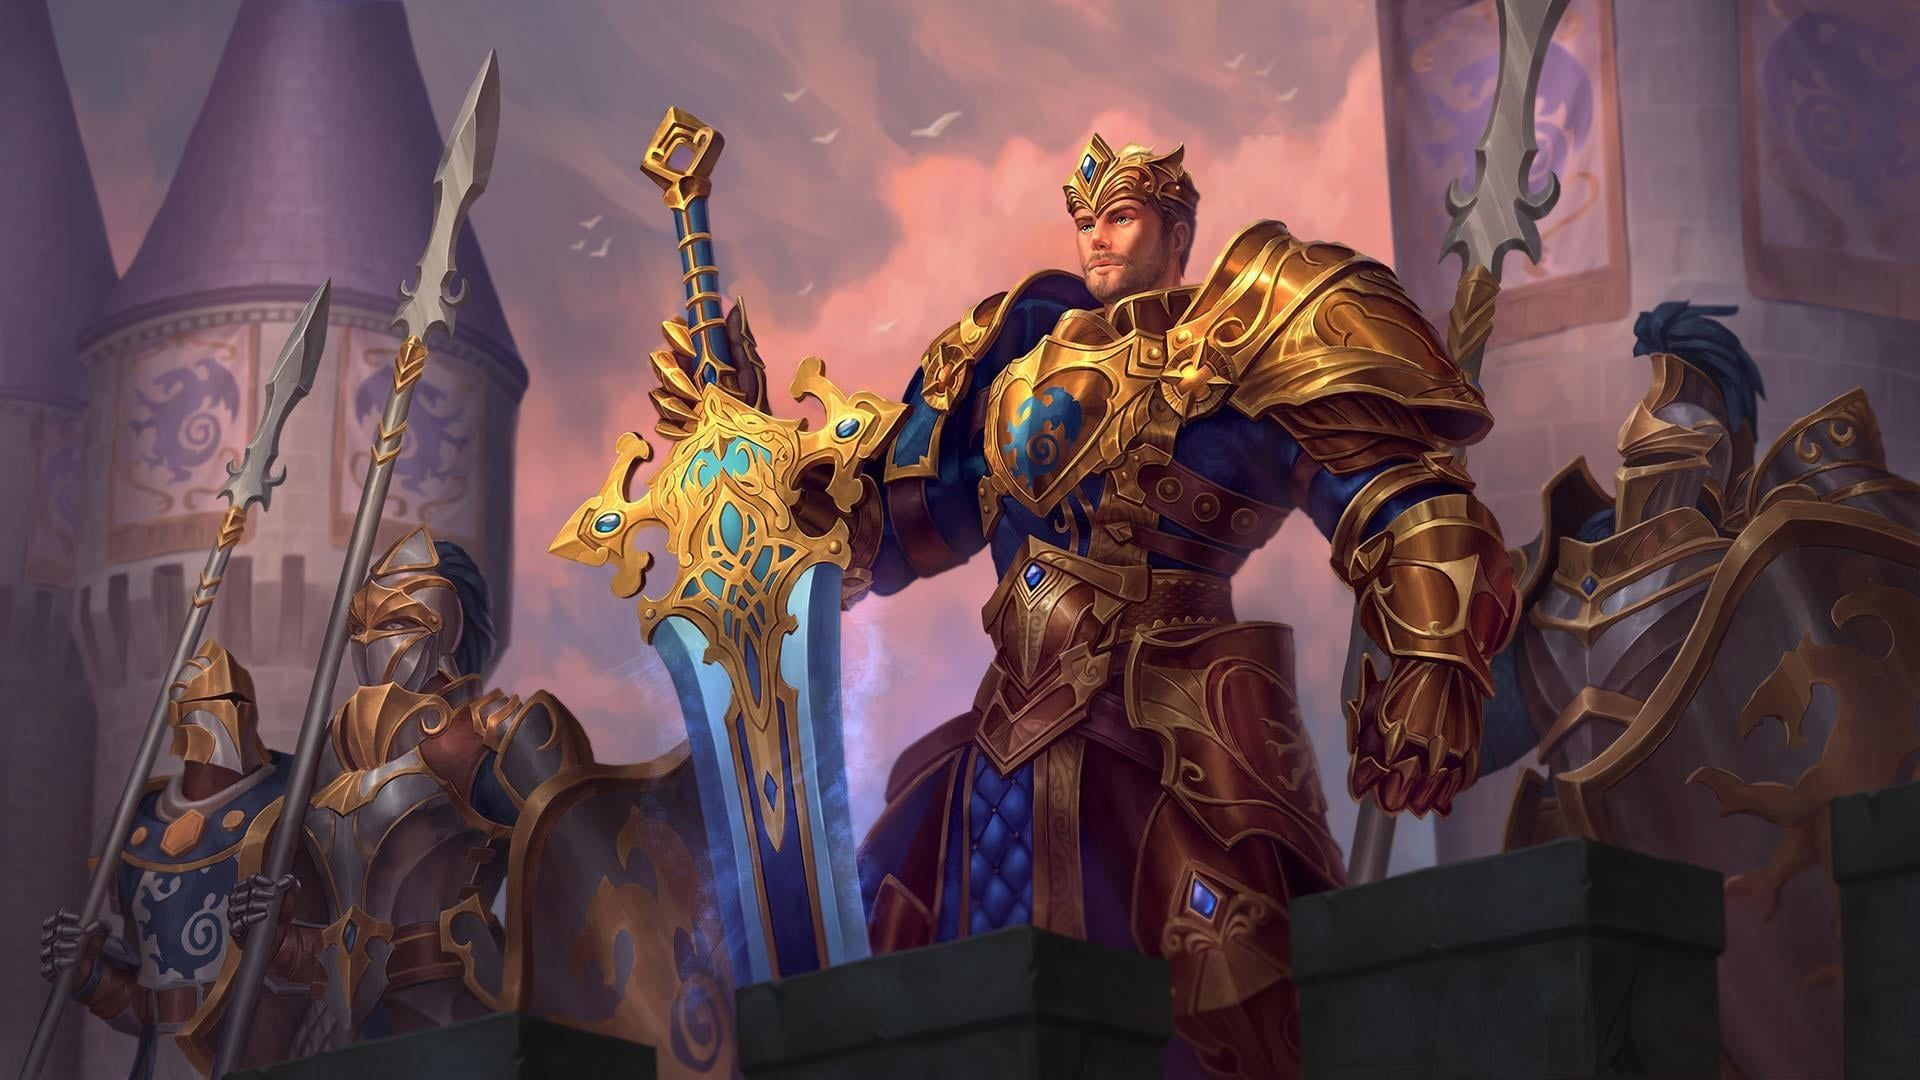 Pin By Javon Carter On Fantasy Characters Artist Smite King Arthur